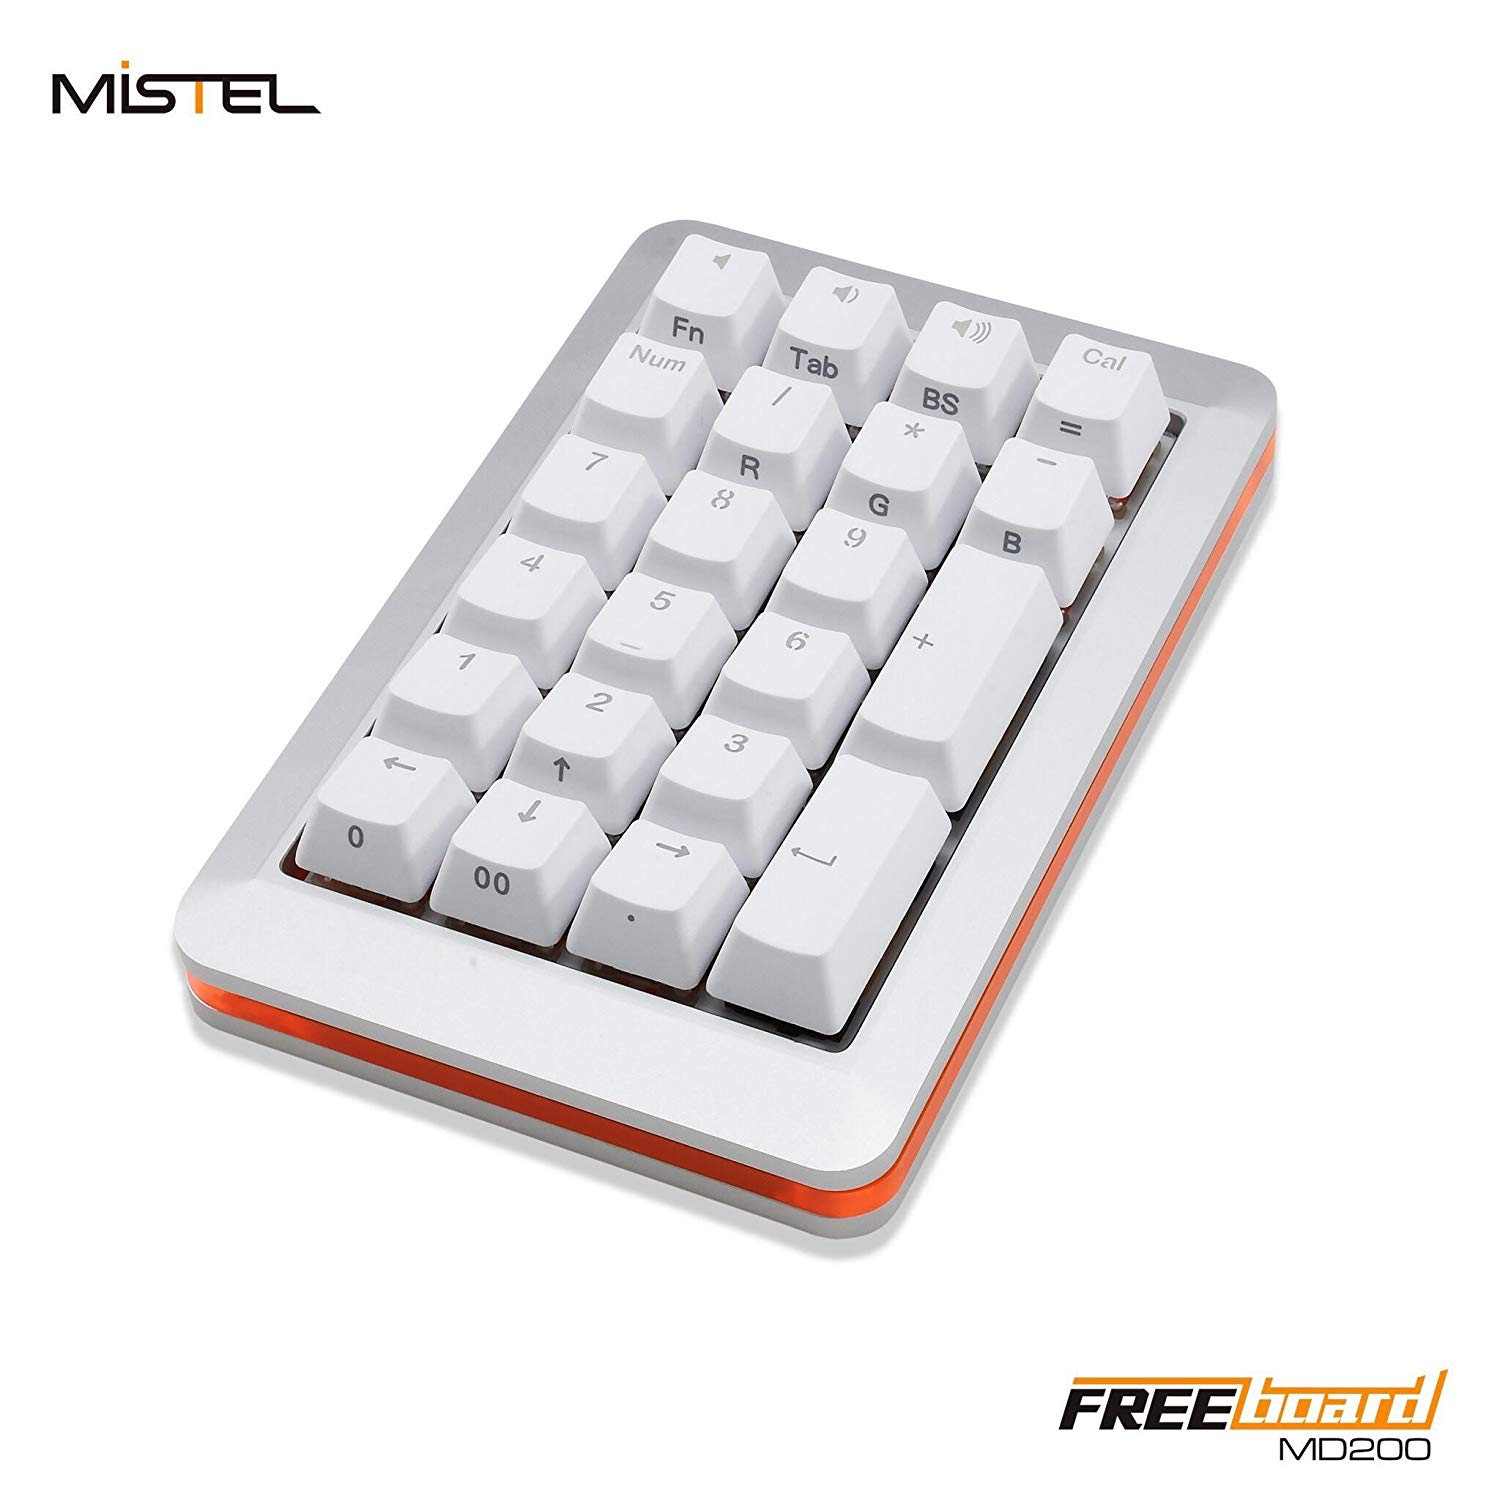 dcb0fbd1e65 Mistel MD200 Freeboard Backlit Doubleshot PBT RGB Aluminum Mechanical  Numpad Cherry MX Switches (Cherry MX